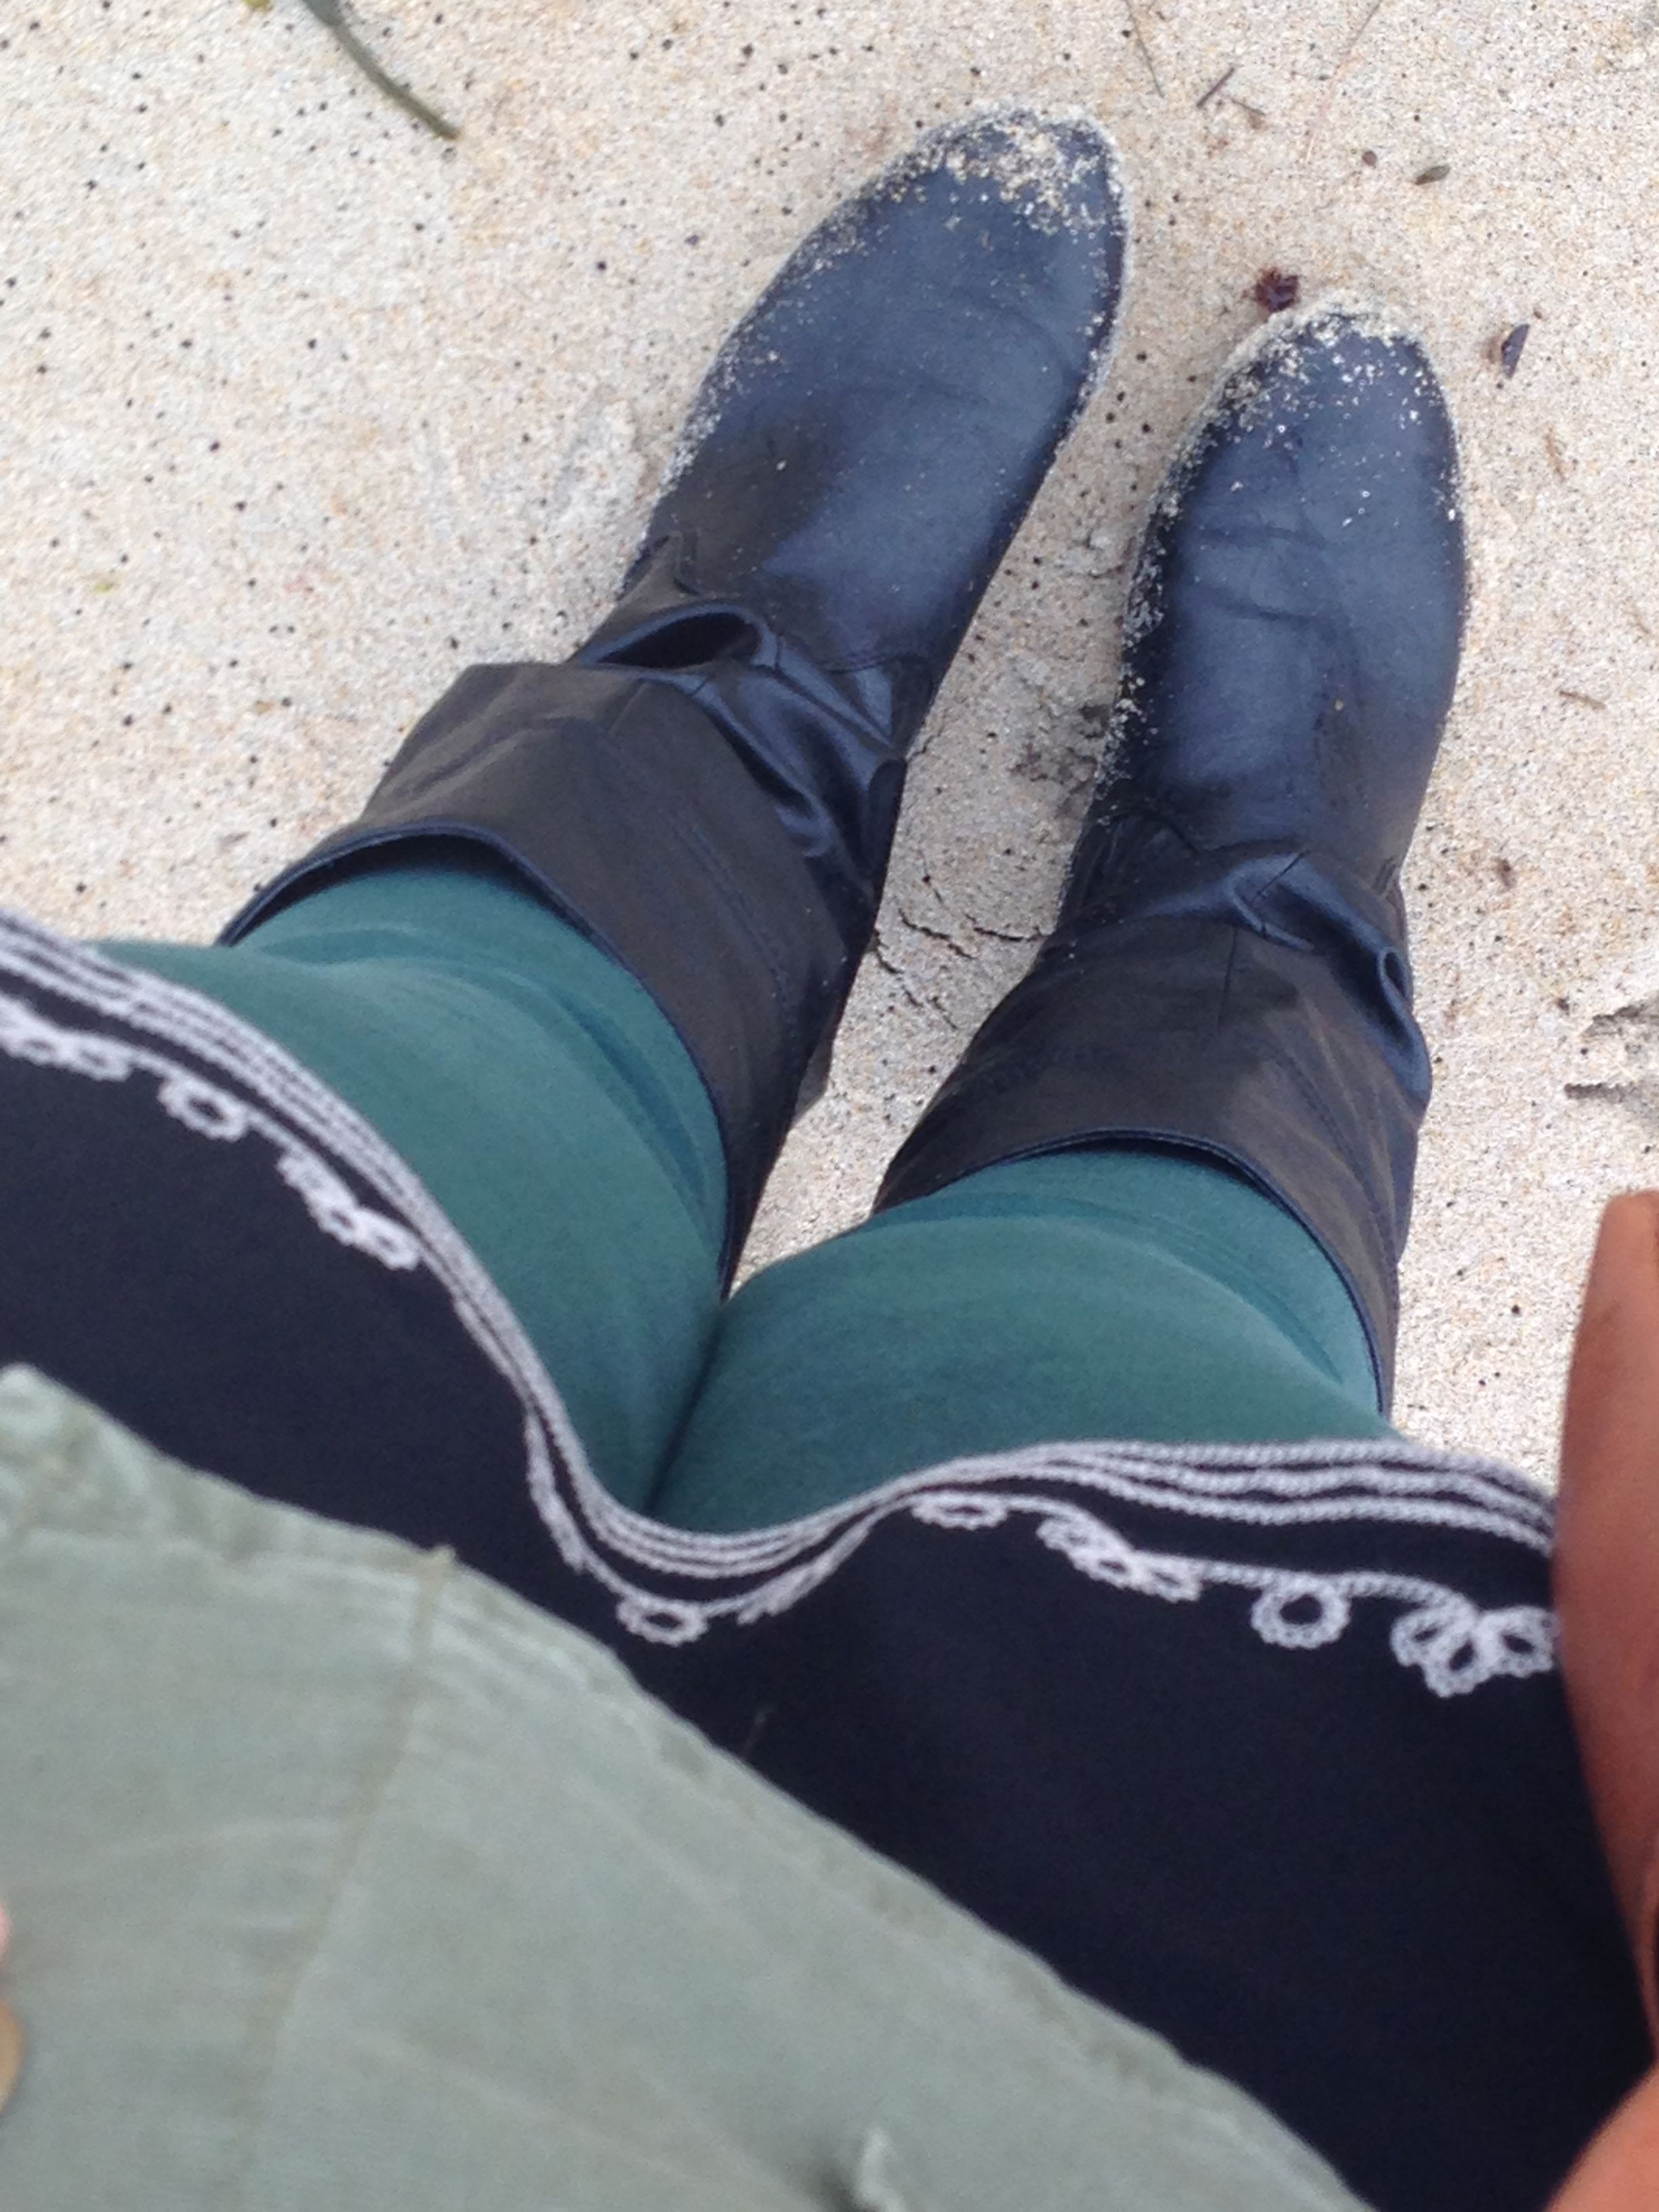 Boots, green skinnies, long black top & green army jacket